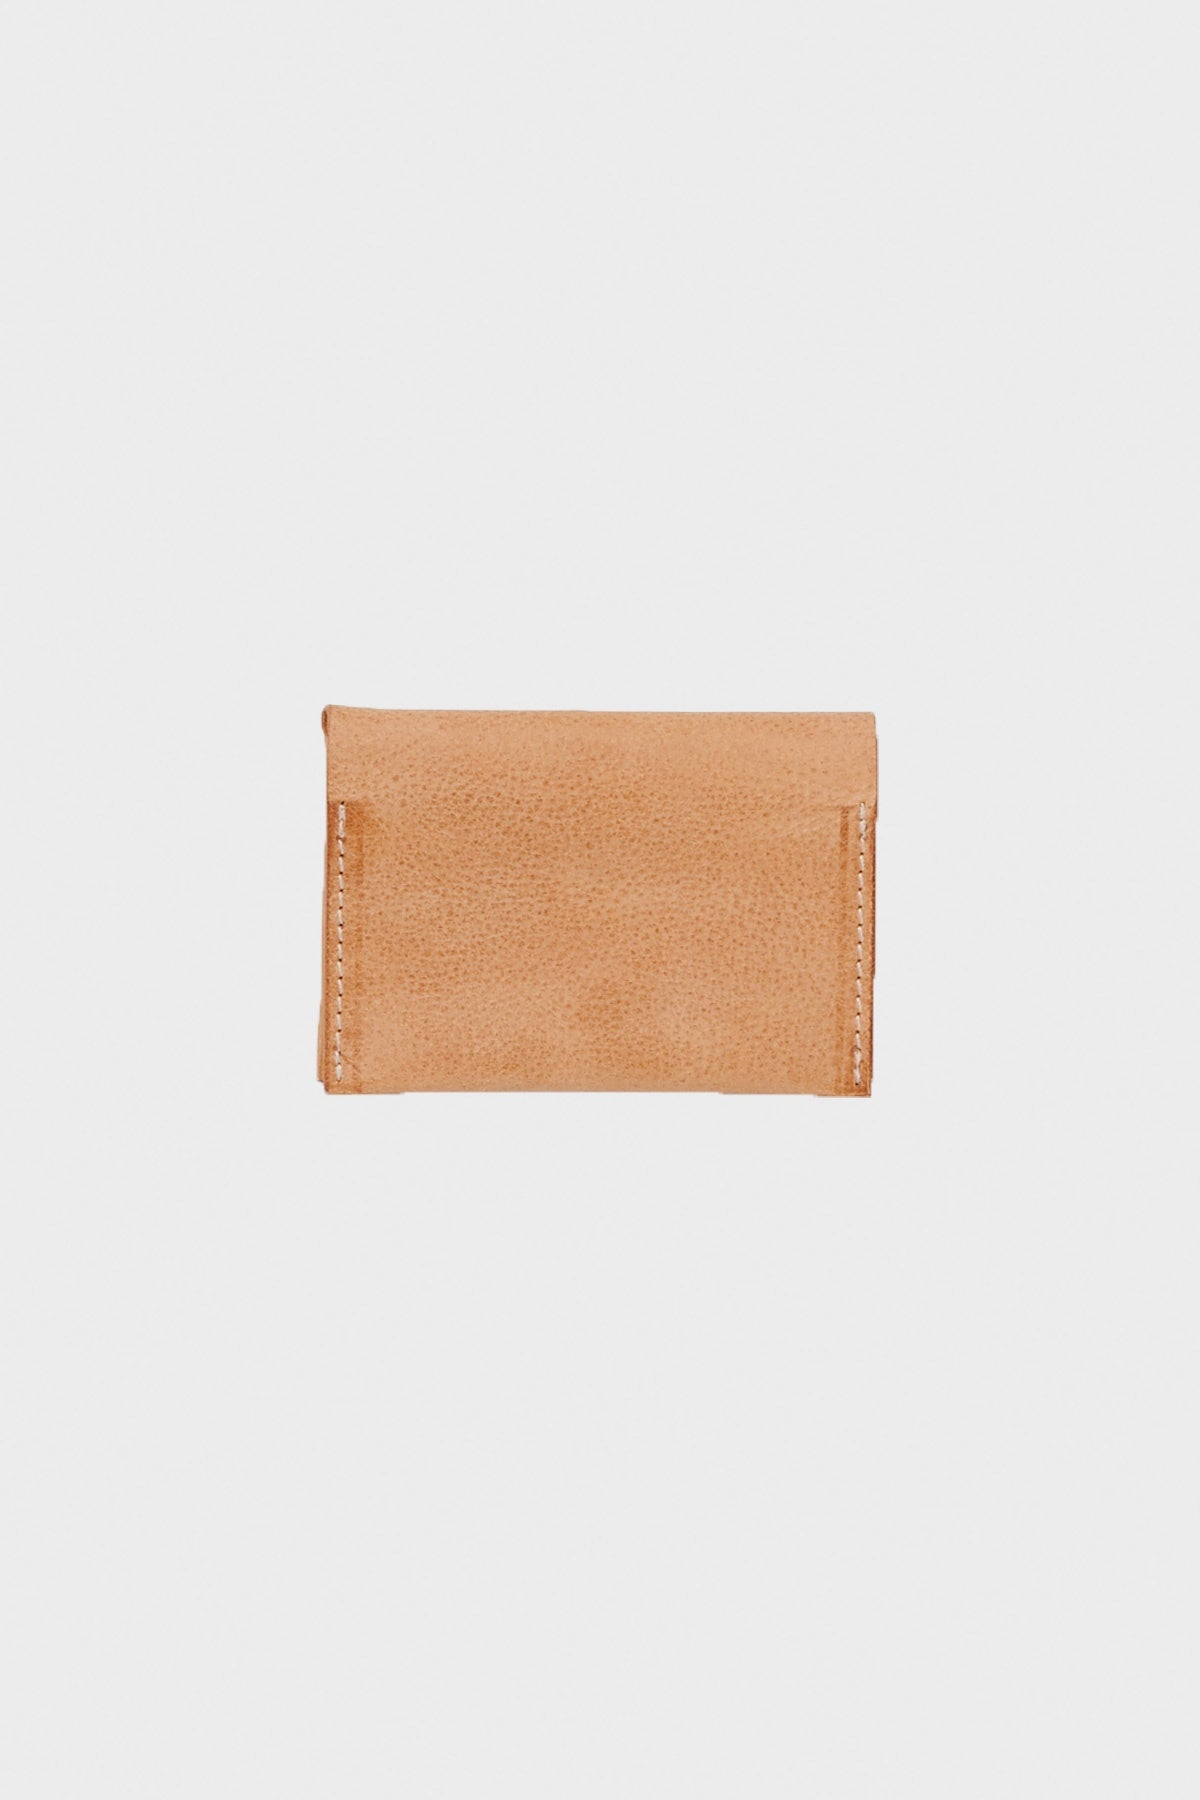 Hender Scheme - Compact Card Case - Natural - Canoe Club